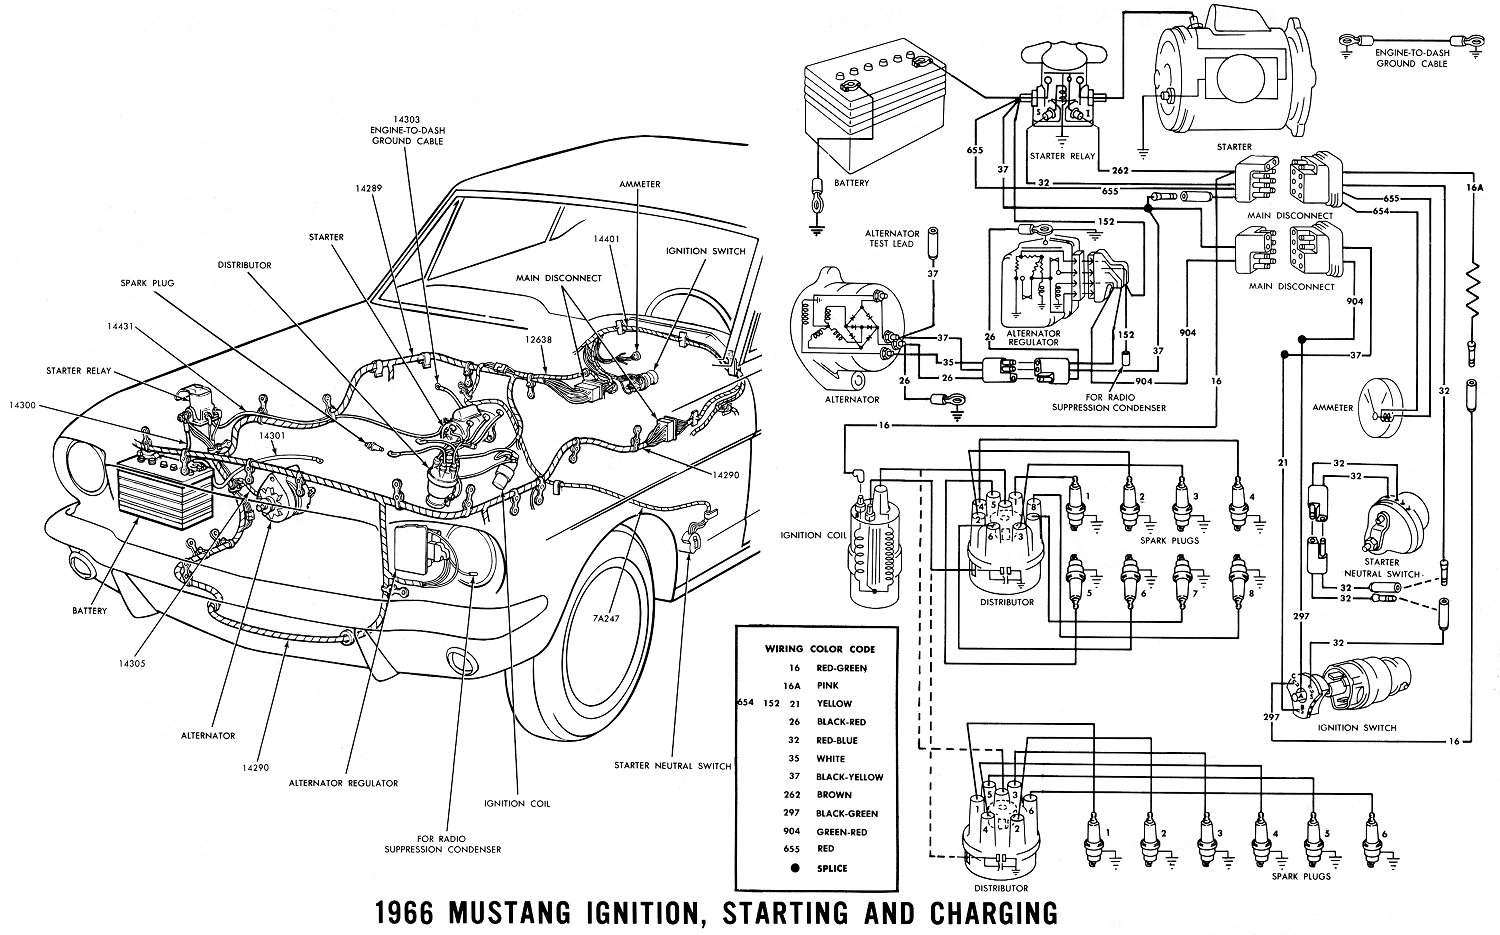 1967 camaro alternator wiring diagram, 67 ford mustang distributor wiring, 67 ford mustang wiring diagram, mustang alternator wiring diagram, 67 mustang ignition wiring diagram, 3 wire alternator wiring diagram, 67 camaro alternator wiring diagram, on 67 ford alternator wiring diagram